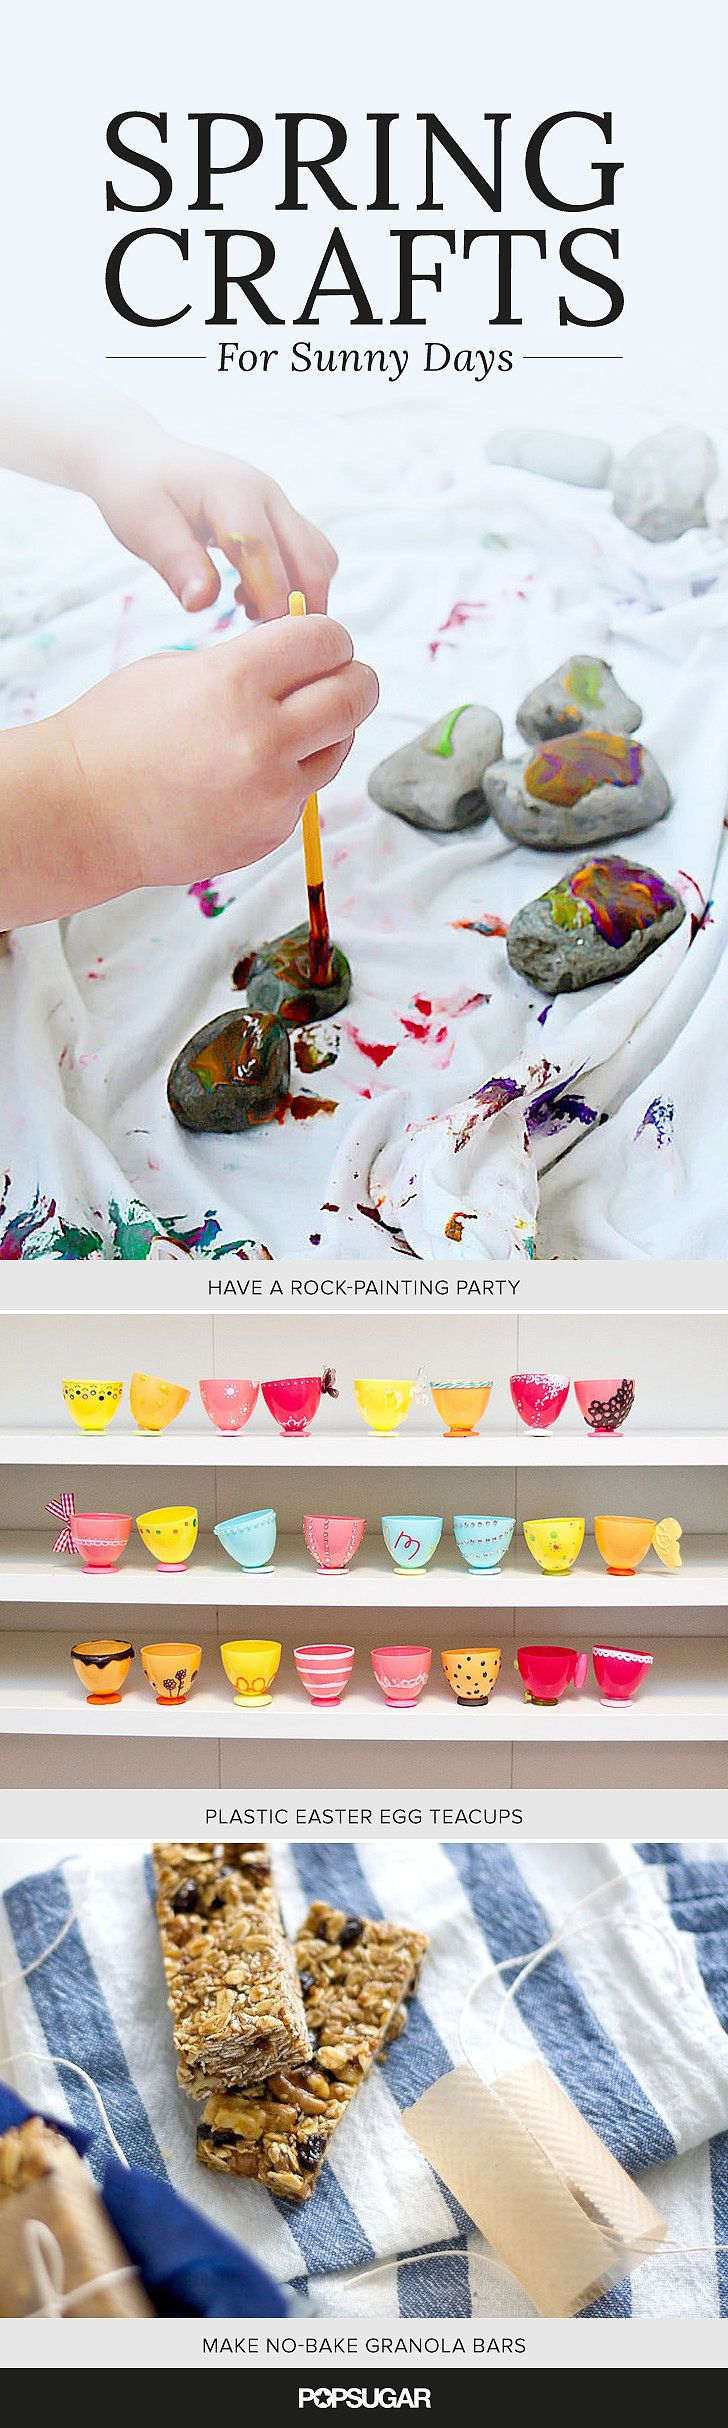 21 Creative Spring Crafts For Sunny Days